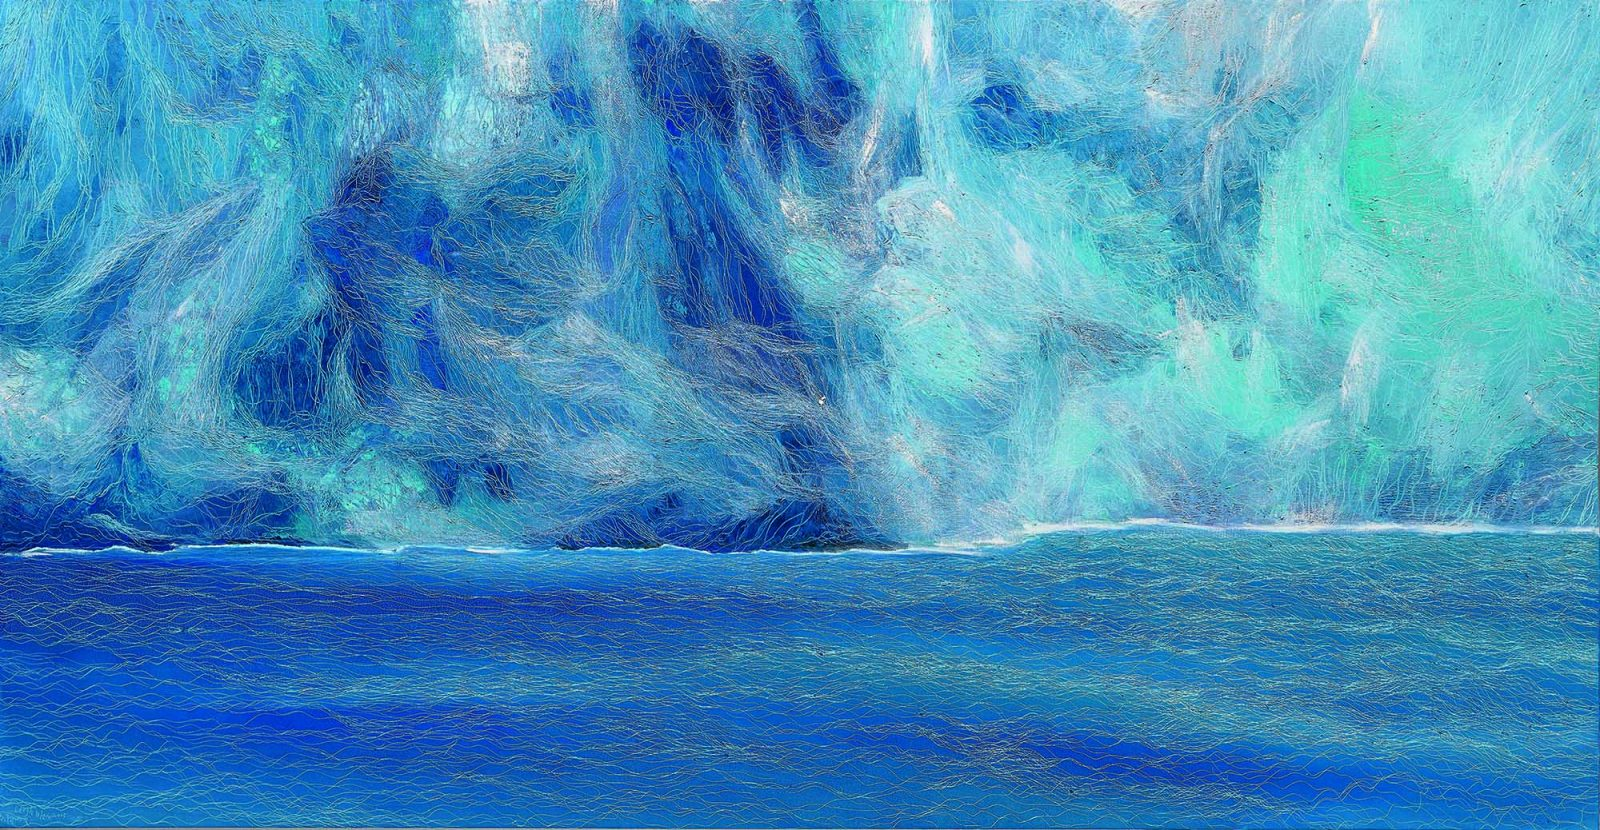 冰川, Glacier 1, 109 x 211 cm, oil on canvas, 2015